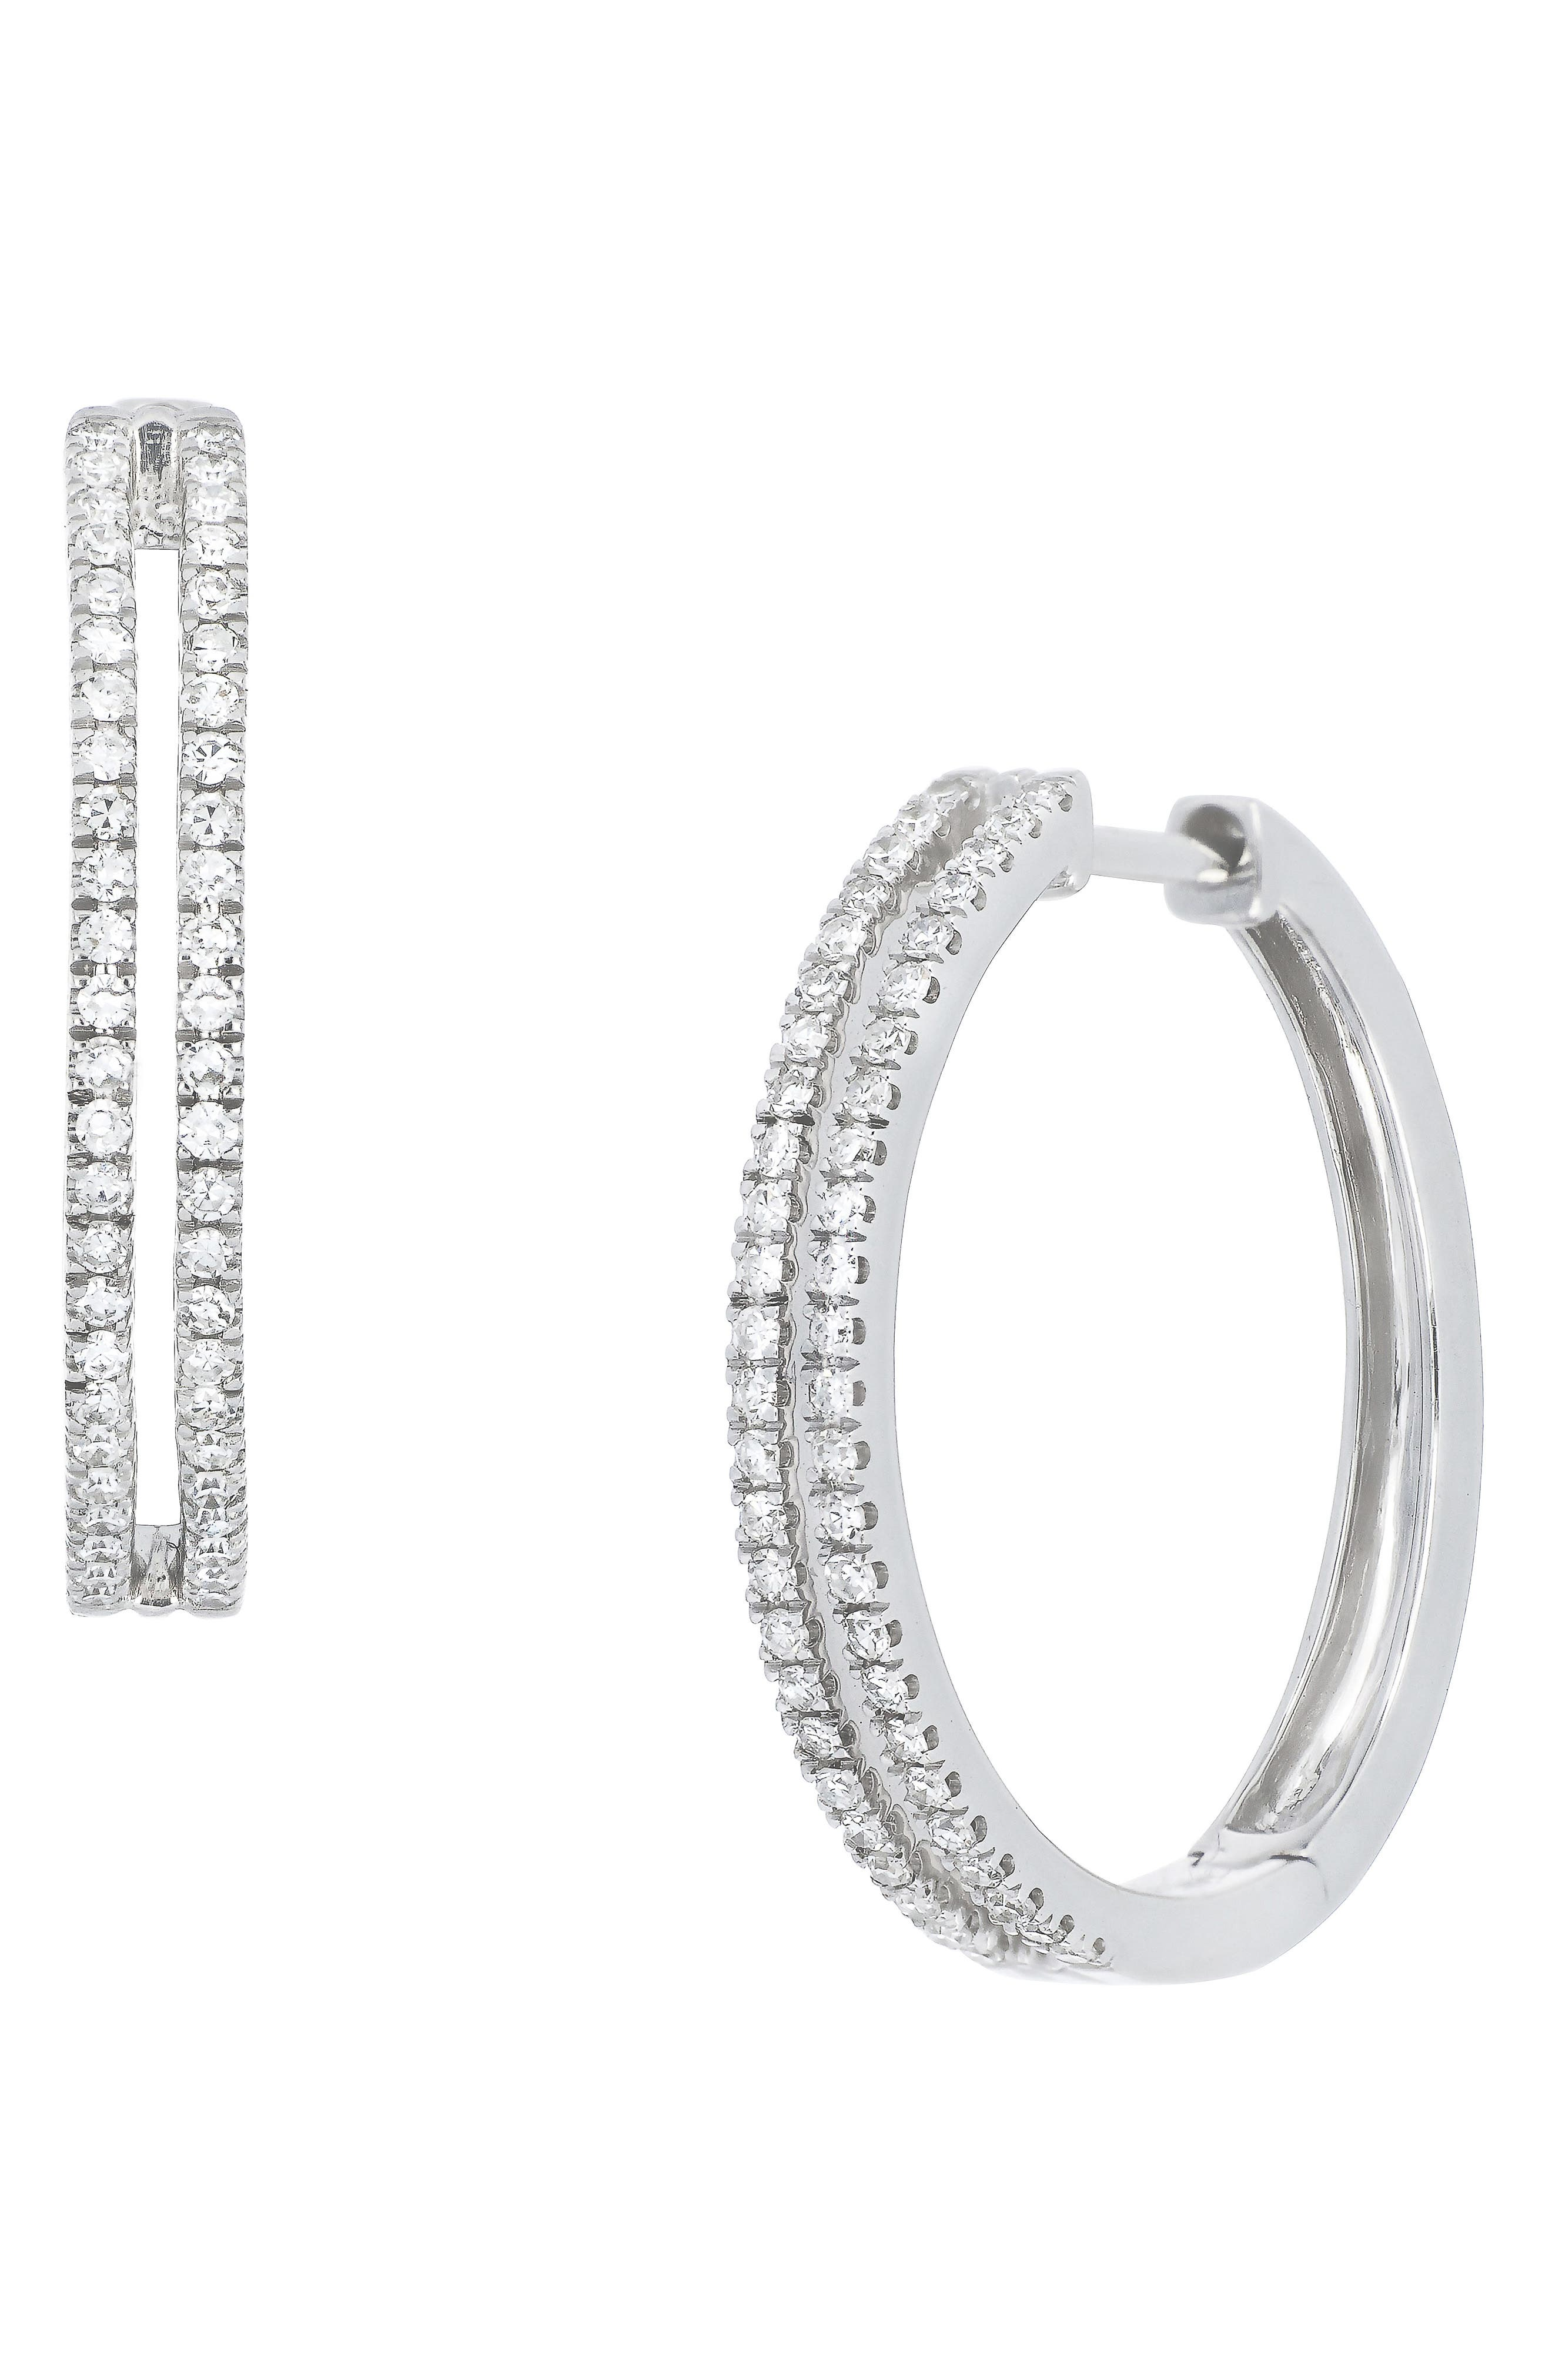 Image of Carriere Sterling Silver Pave Diamond Double-Row Hoop Earrings - 0.40 ctw